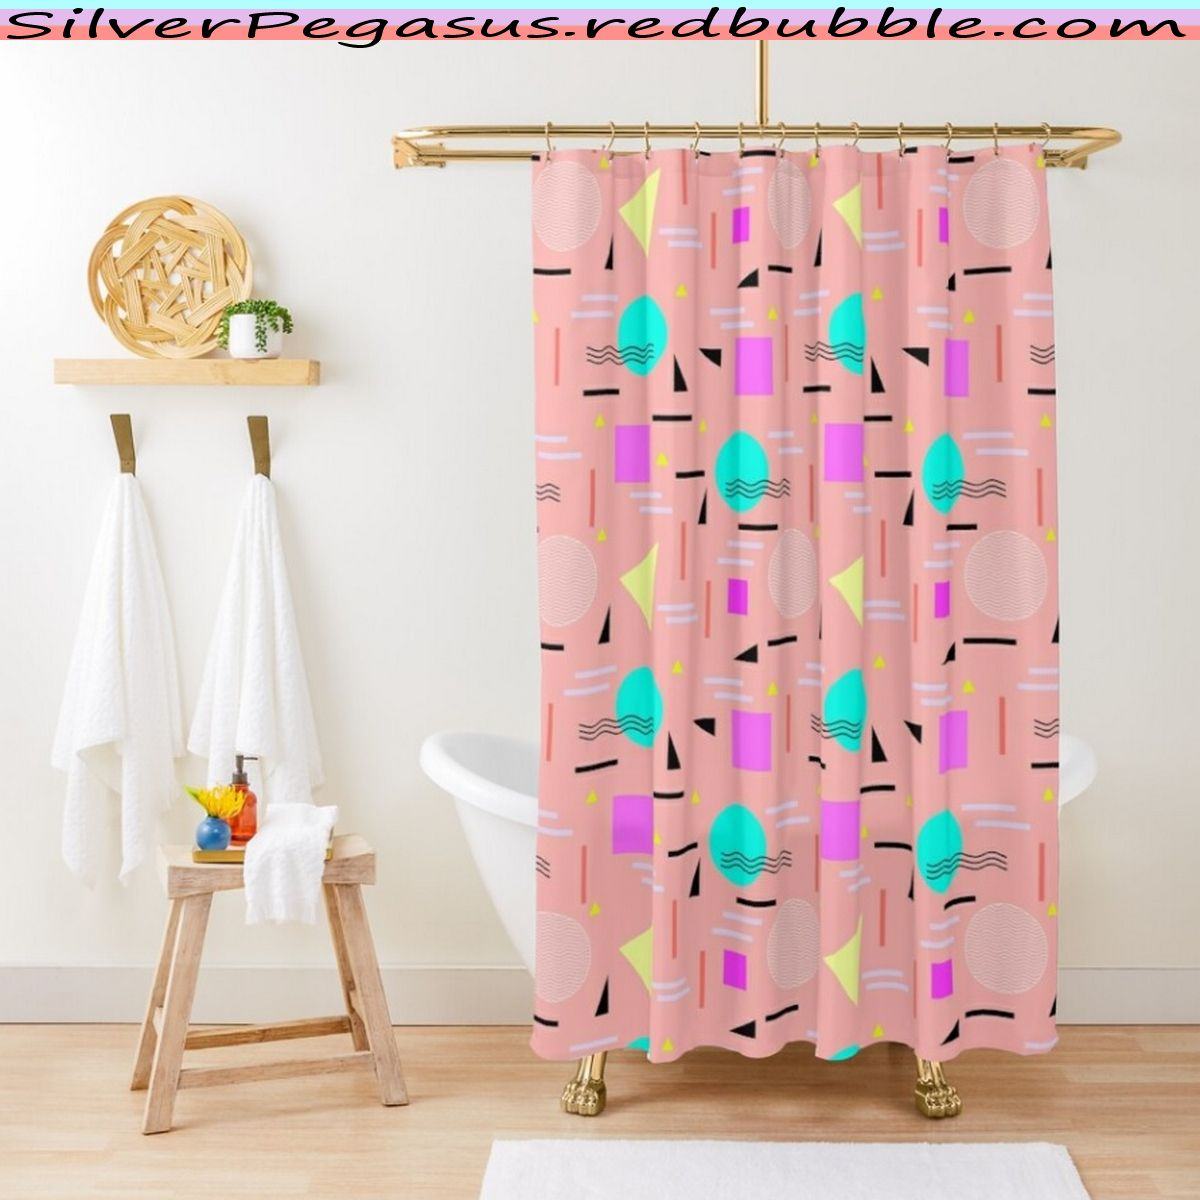 Memphis Forever Peach Shower Curtain By Silverpegasus In 2020